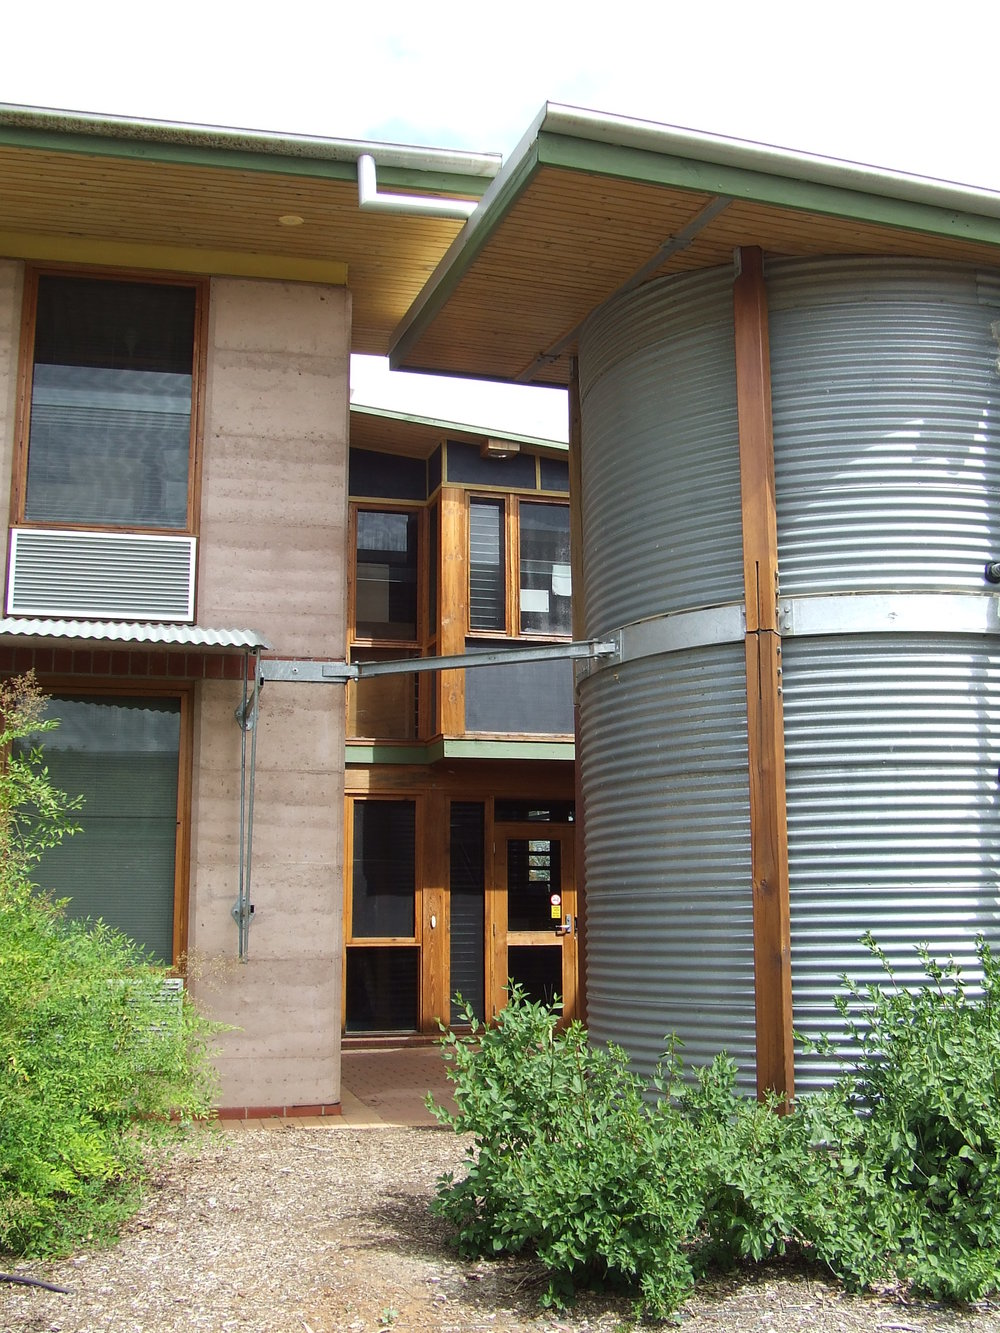 Rainwater harvesting is done directly, straght from the roof to the tank.